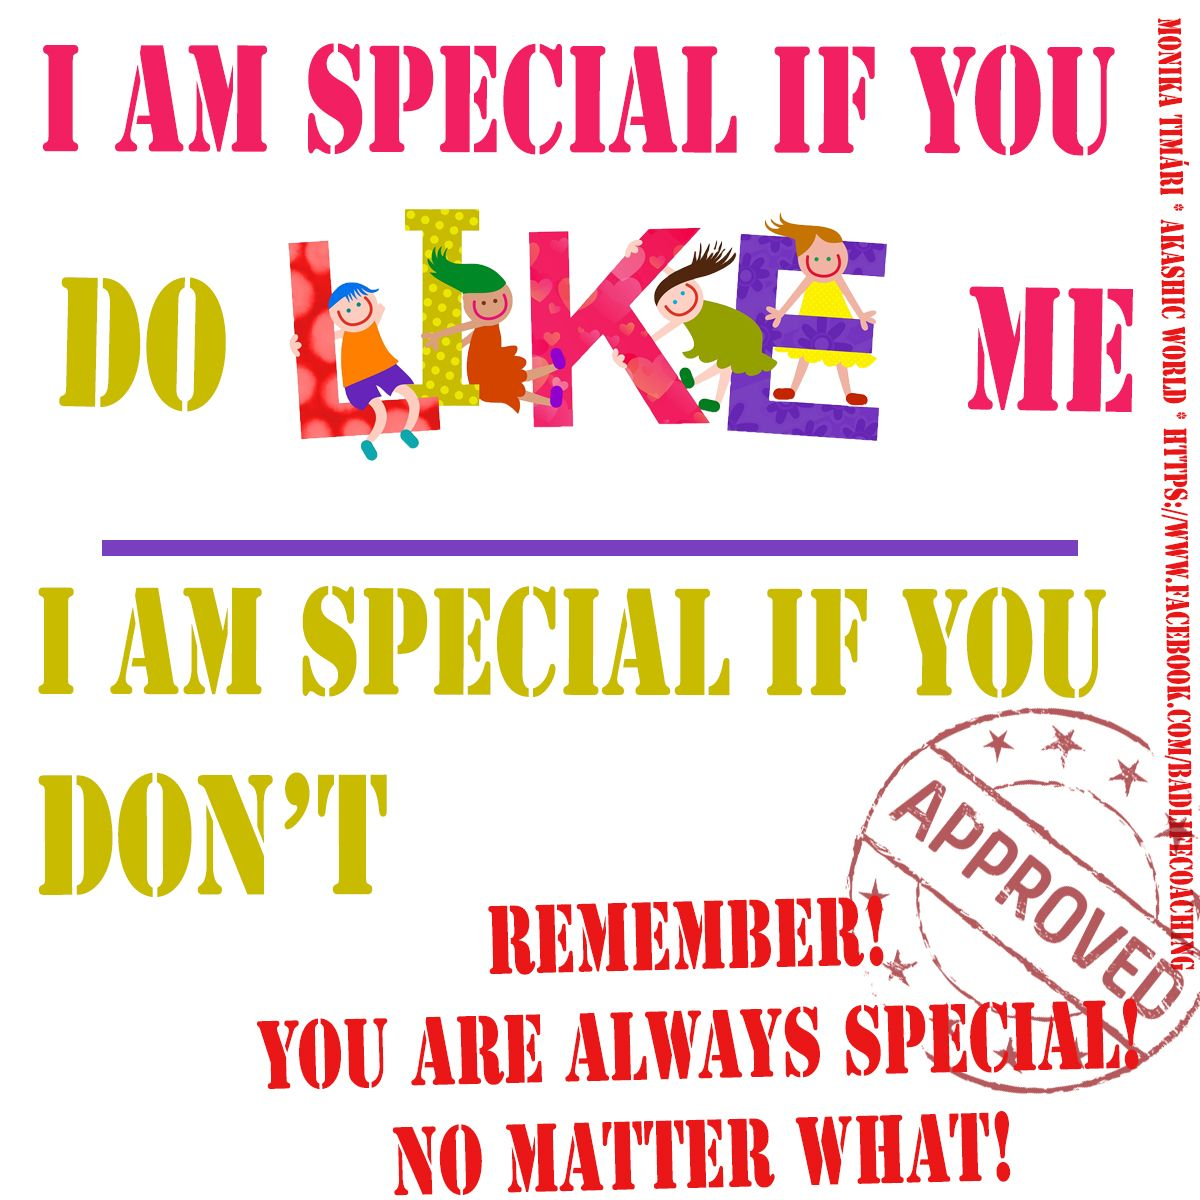 So often we want to please others to Like us. But actualy not everybody will like us. But You need to remember. You are You and no matter what, YOU ARE SPECIAL! by Akashic-World.com